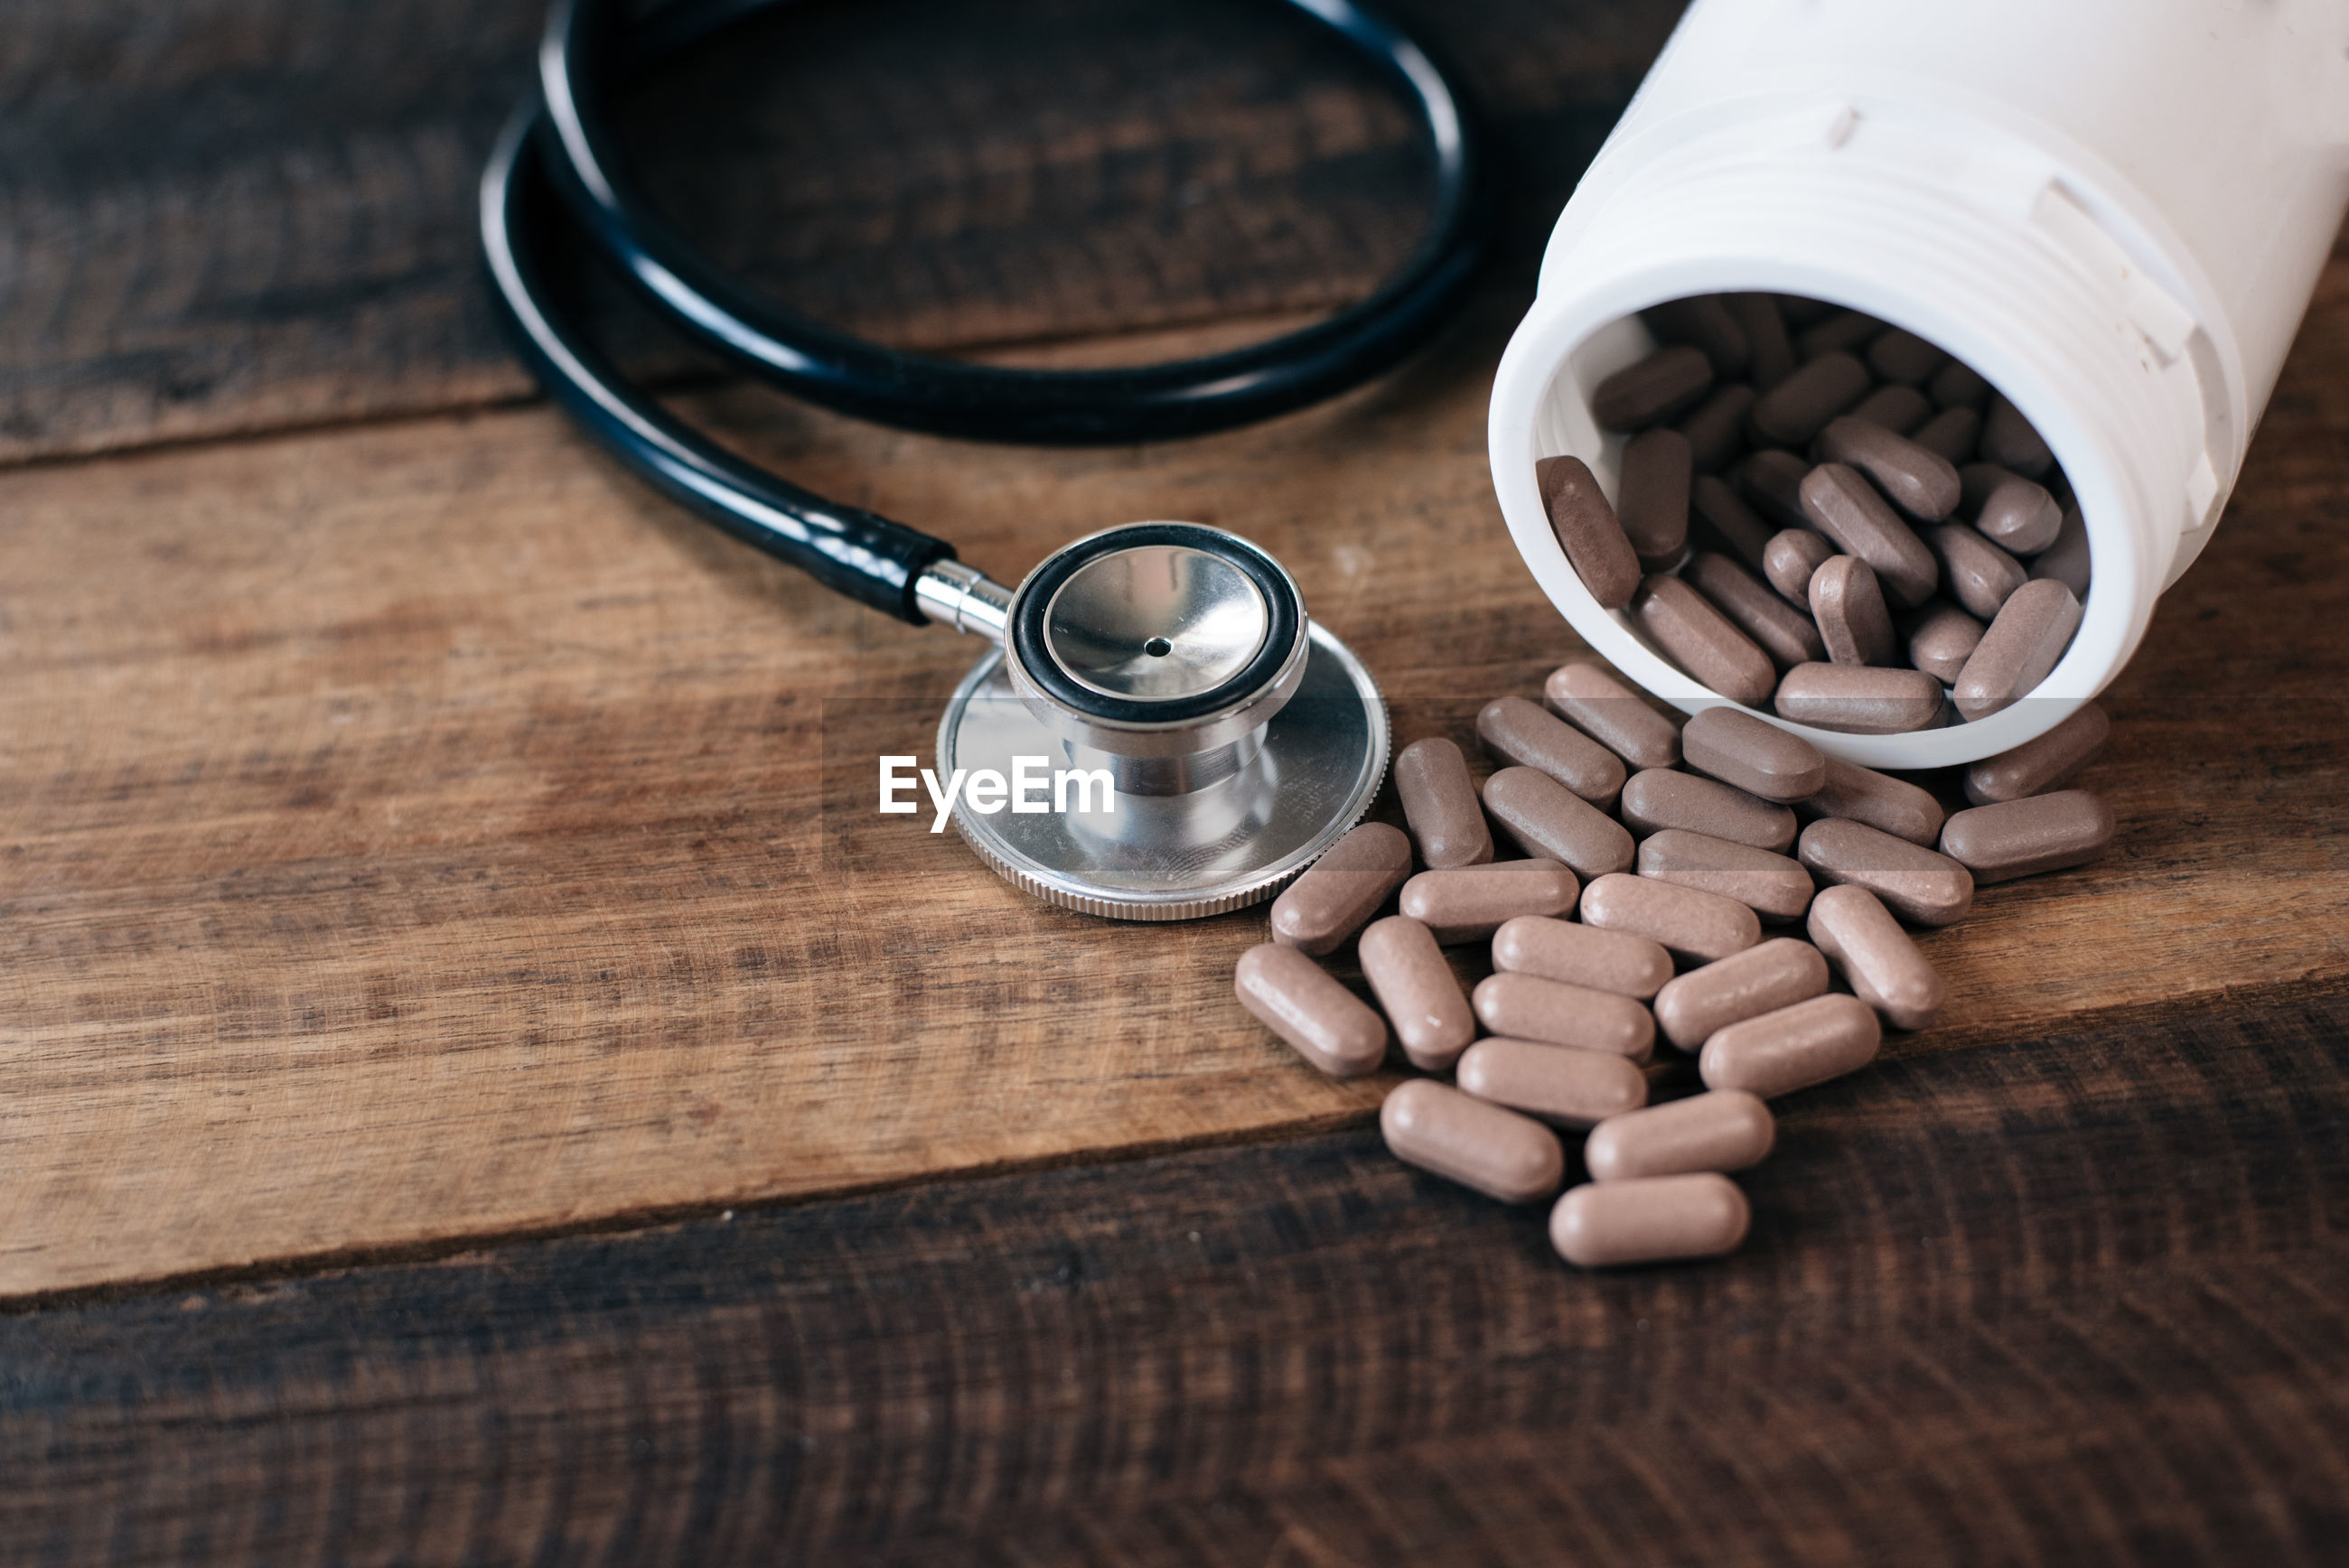 High angle view of capsules with stethoscope on wooden table